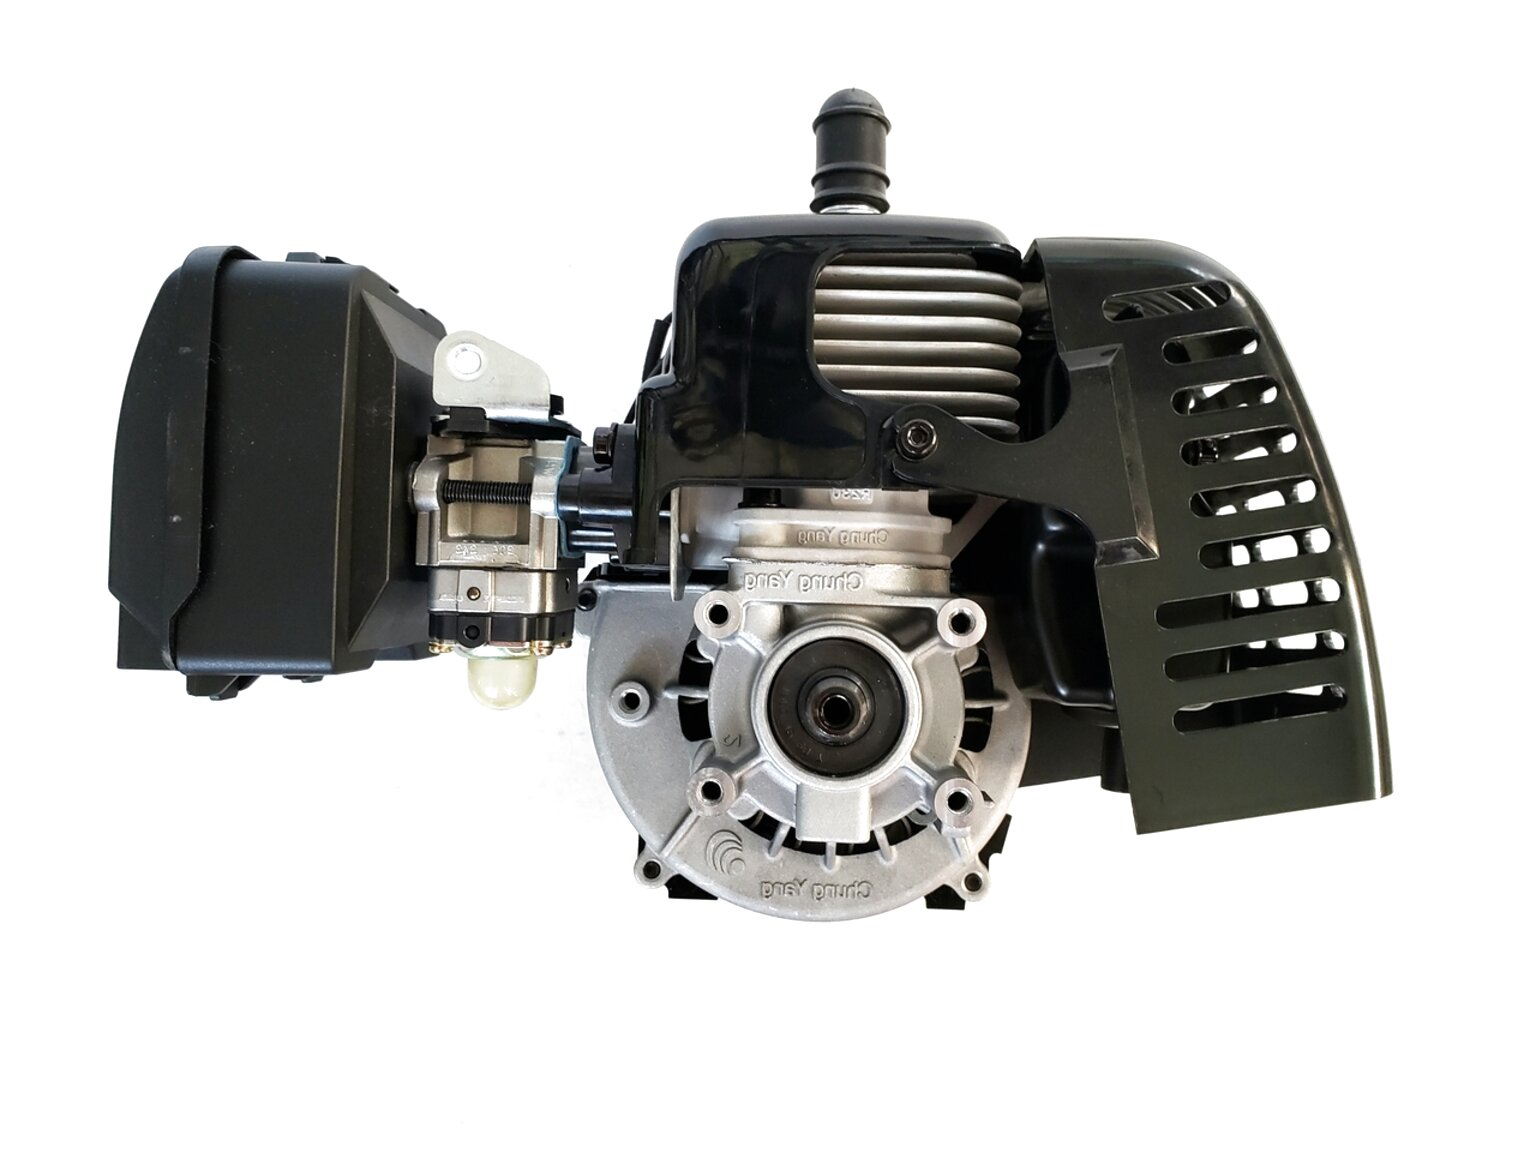 goped engine for sale